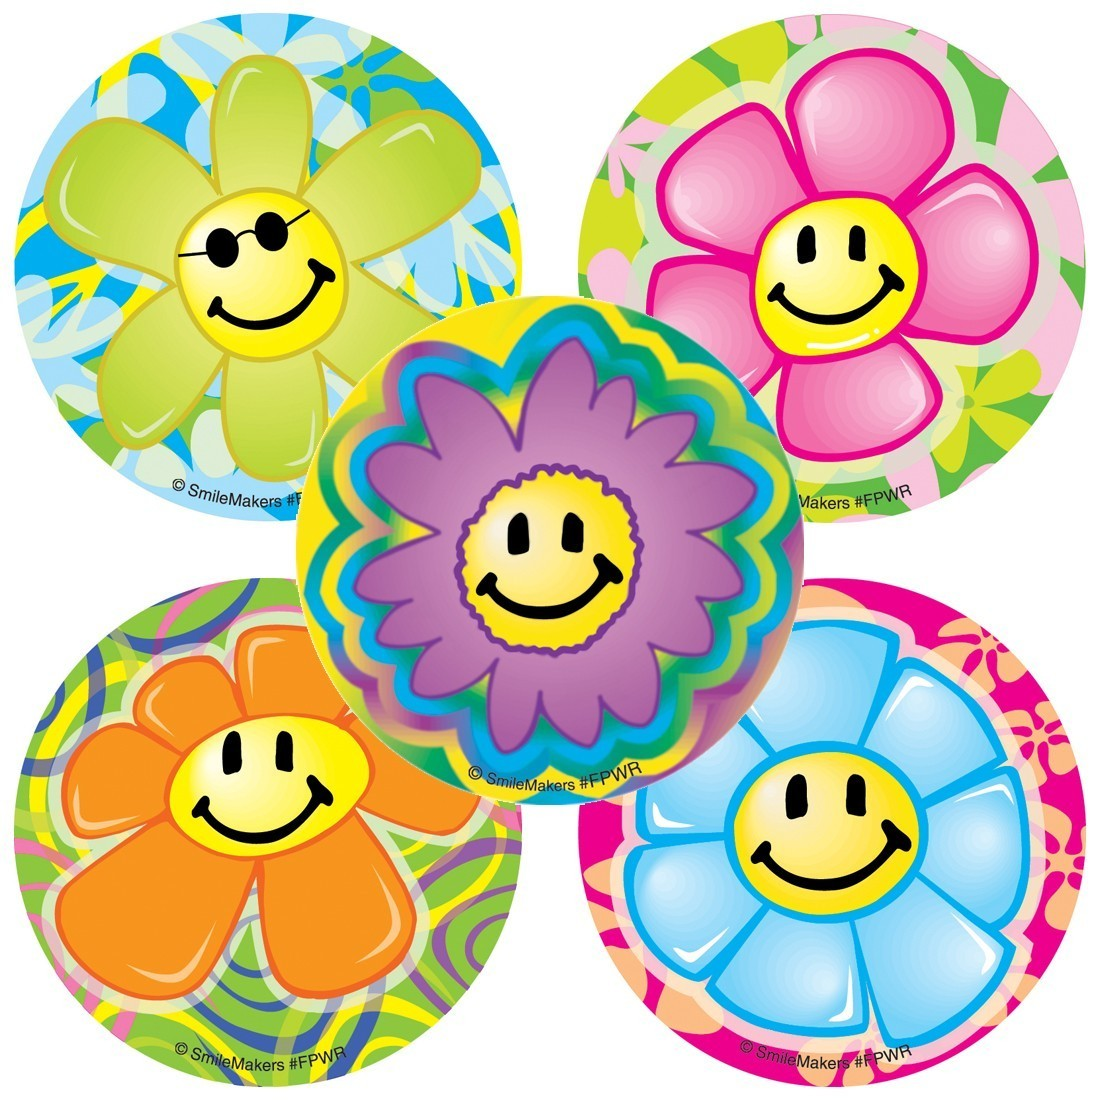 Flower Power Stickers                              [image]